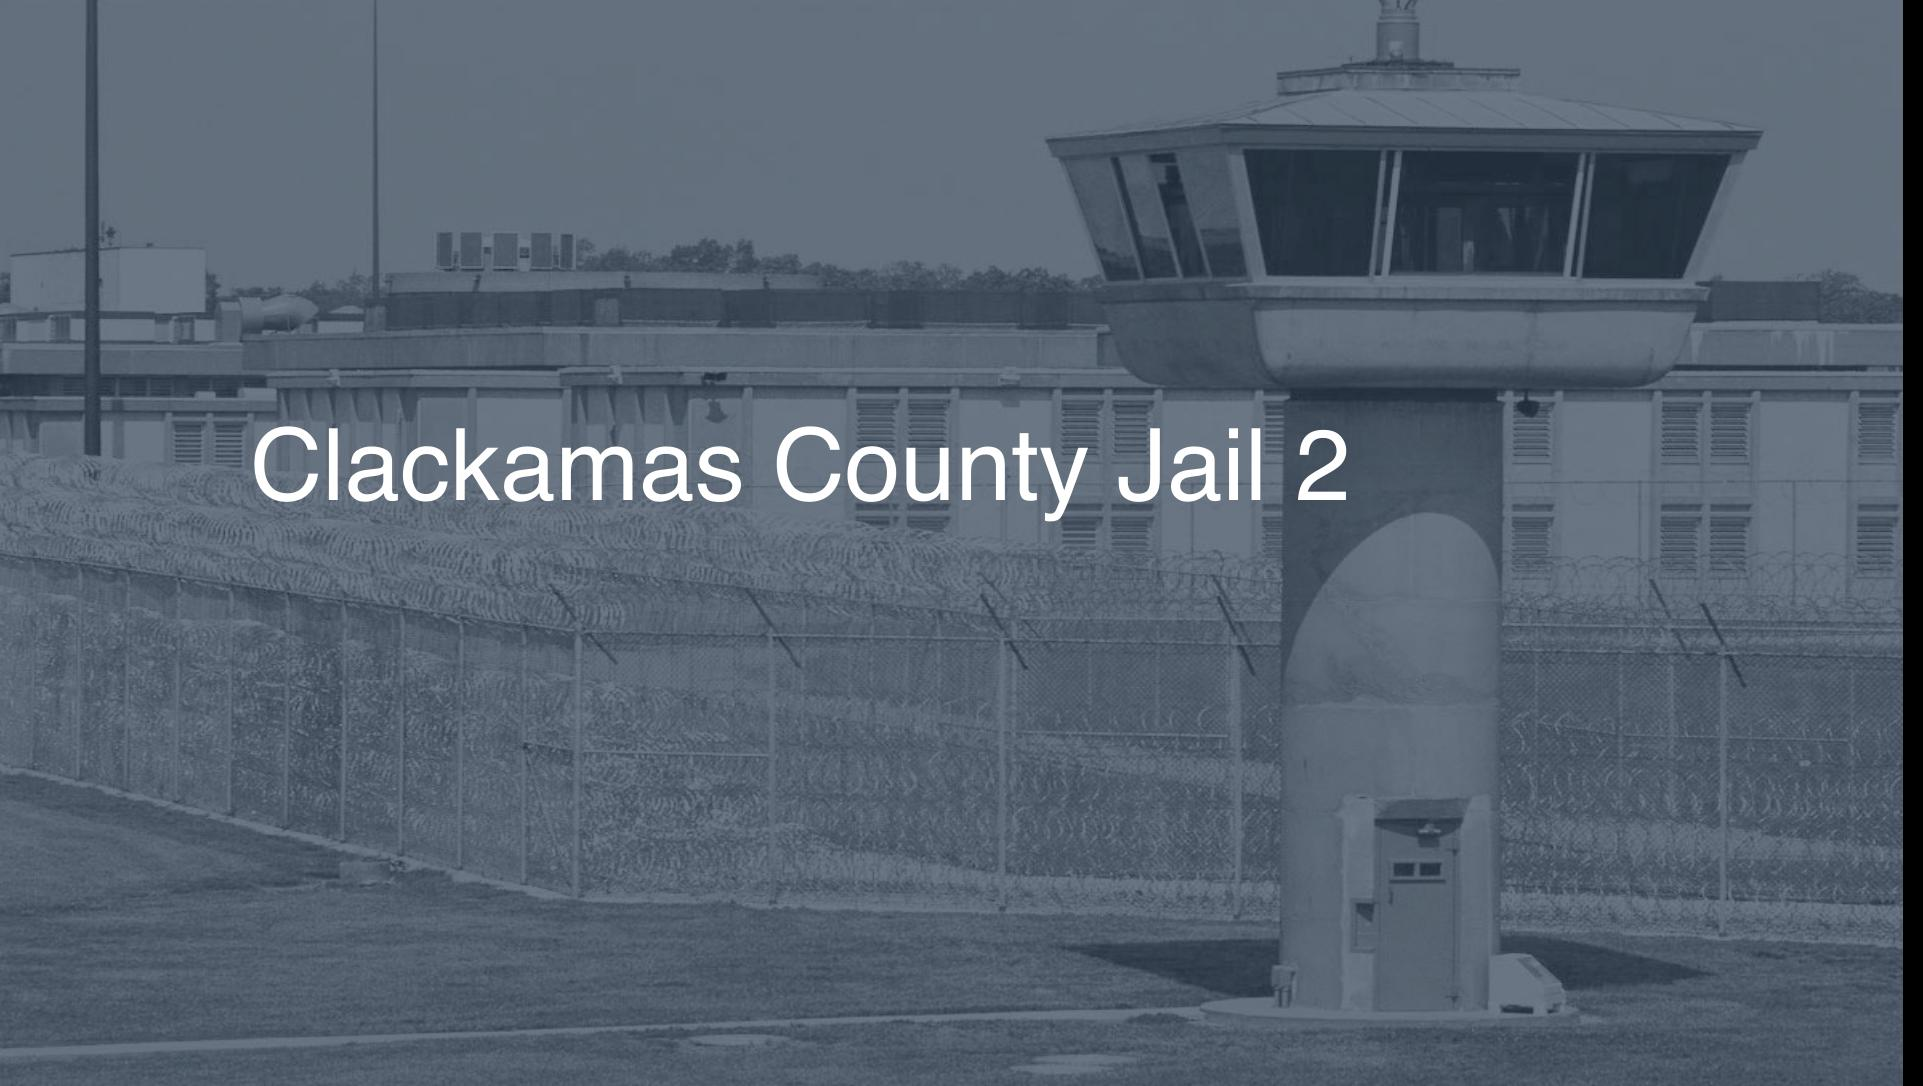 Clackamas County Jail | Pigeonly - Inmate Search, Locate